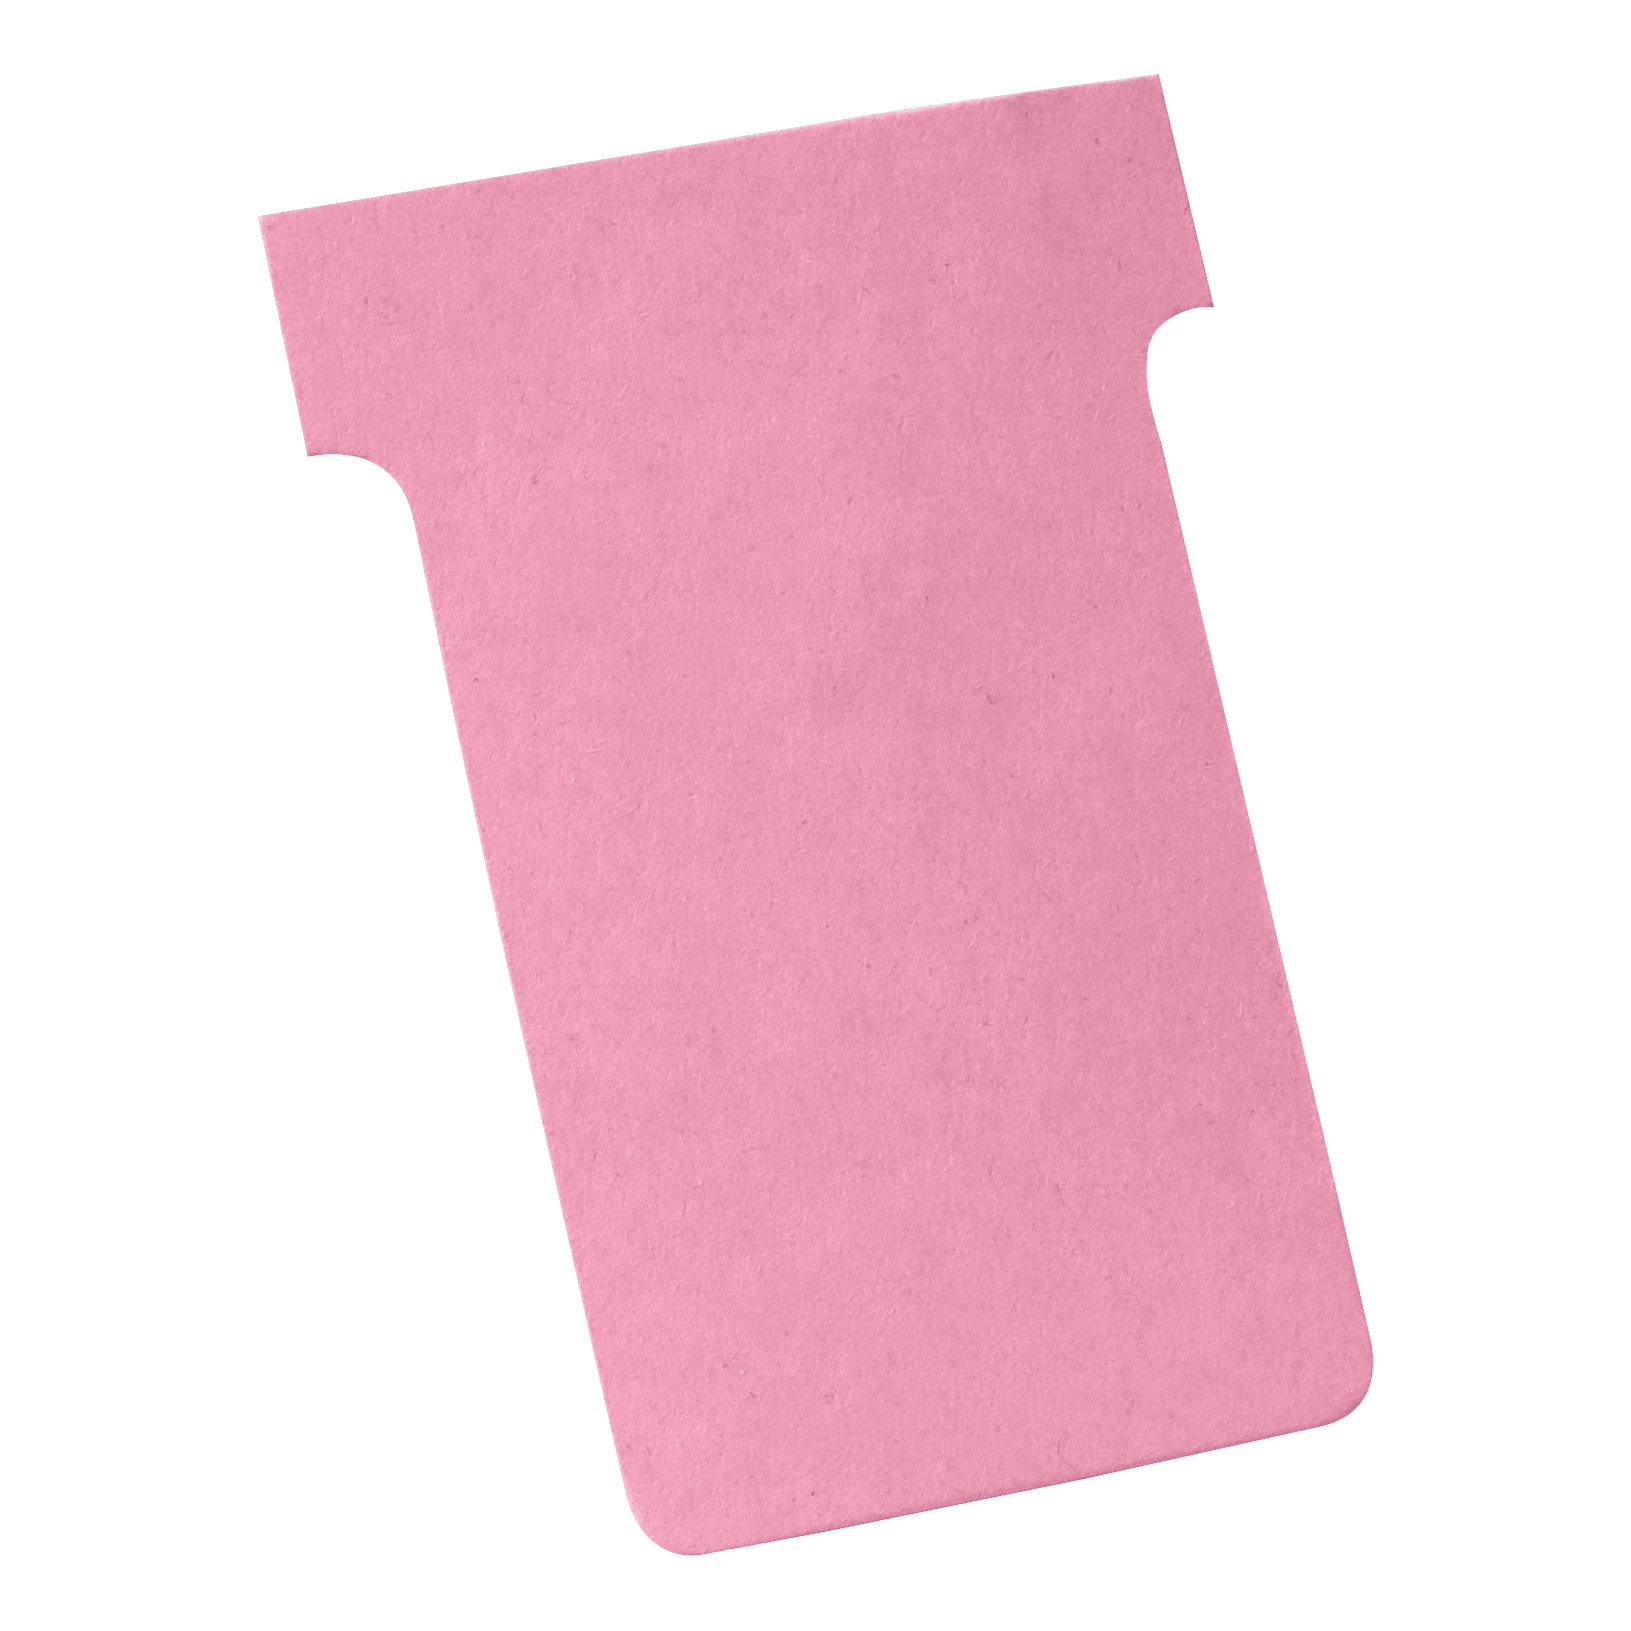 T Cards Nobo T-Cards 160gsm Tab Top 15mm W60x Bottom W48.5x Full H85mm Size 2 Pink Ref 2002008 Pack 100